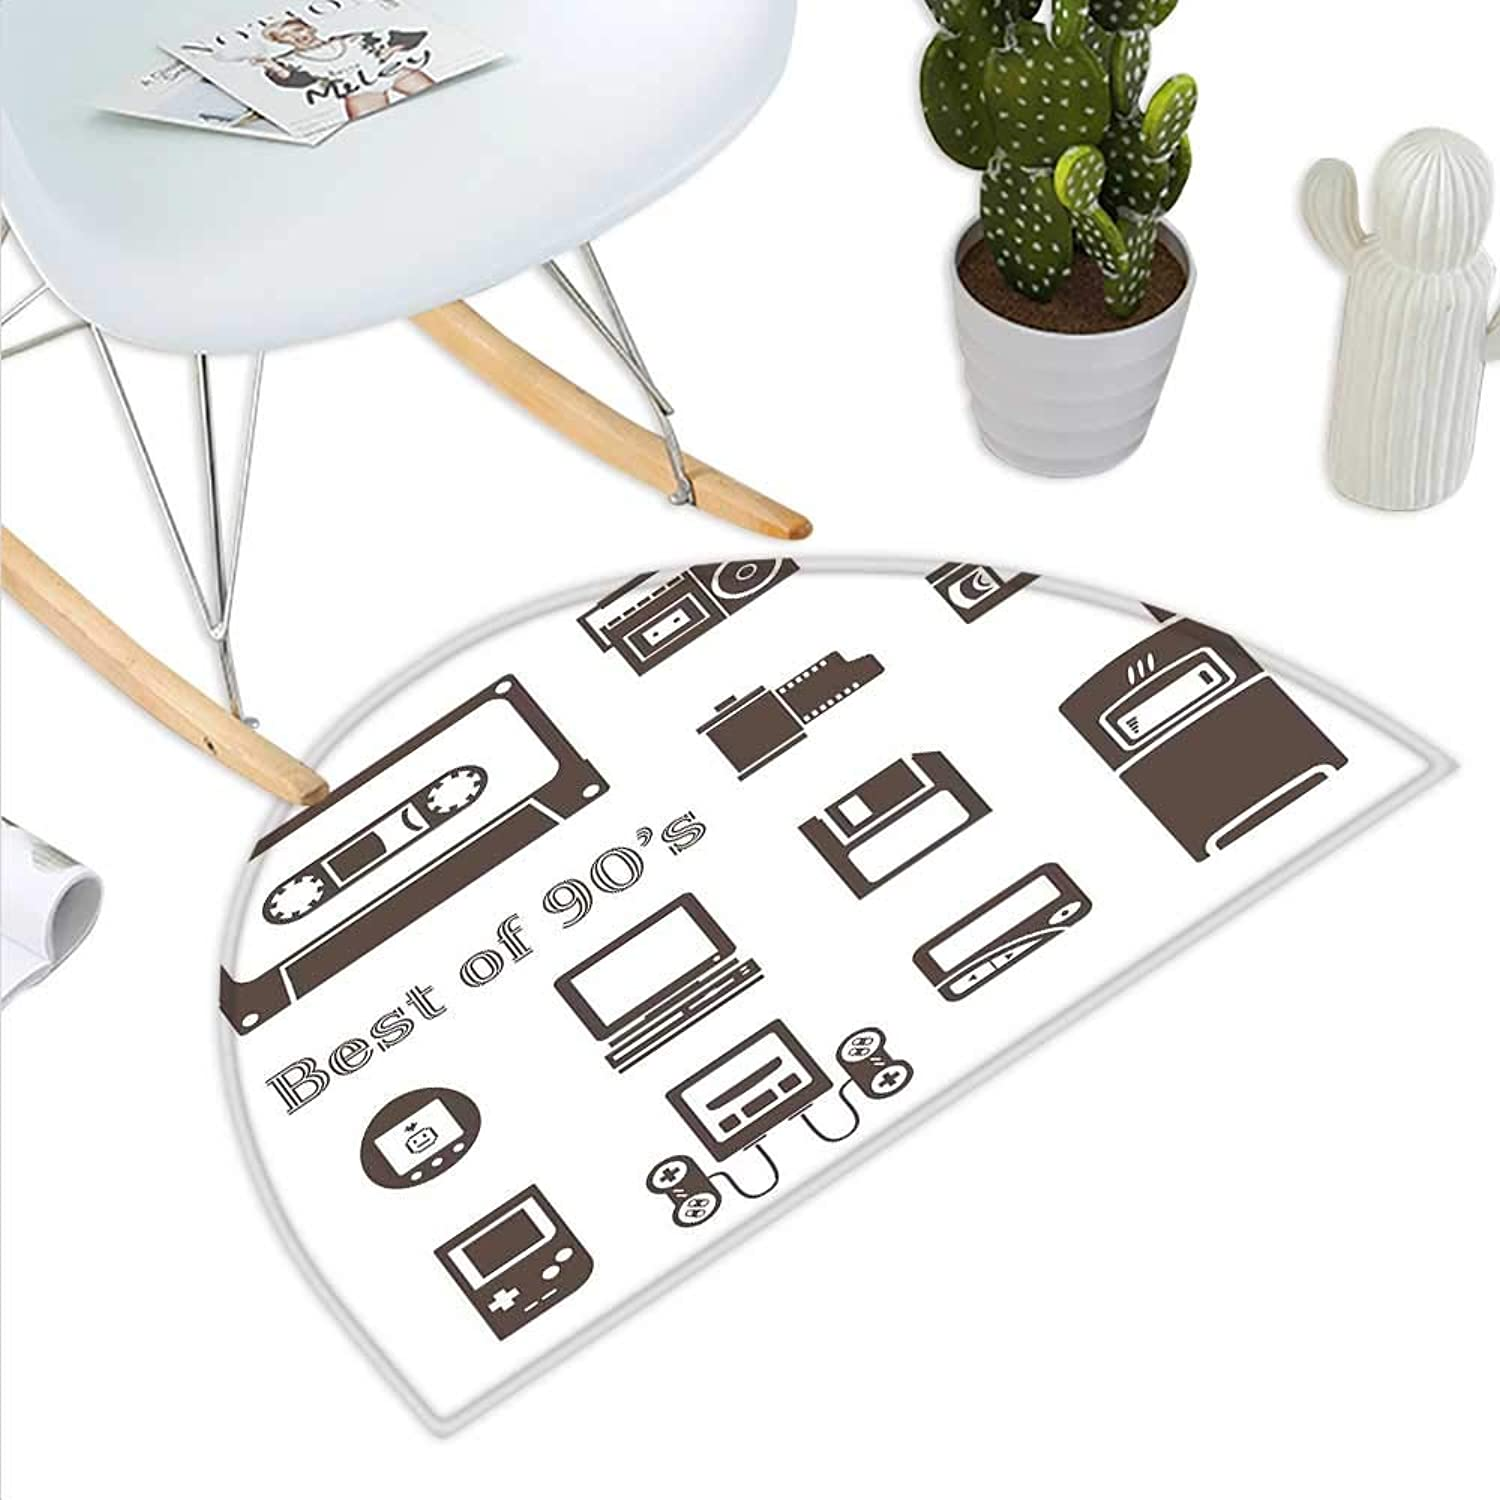 90s Semicircle Doormat Gadget of 90s Icons Pattern with Desktop Computer Video Game Joystick Nostalgia Theme Print Halfmoon doormats H 35.4  xD 53.1  Brown